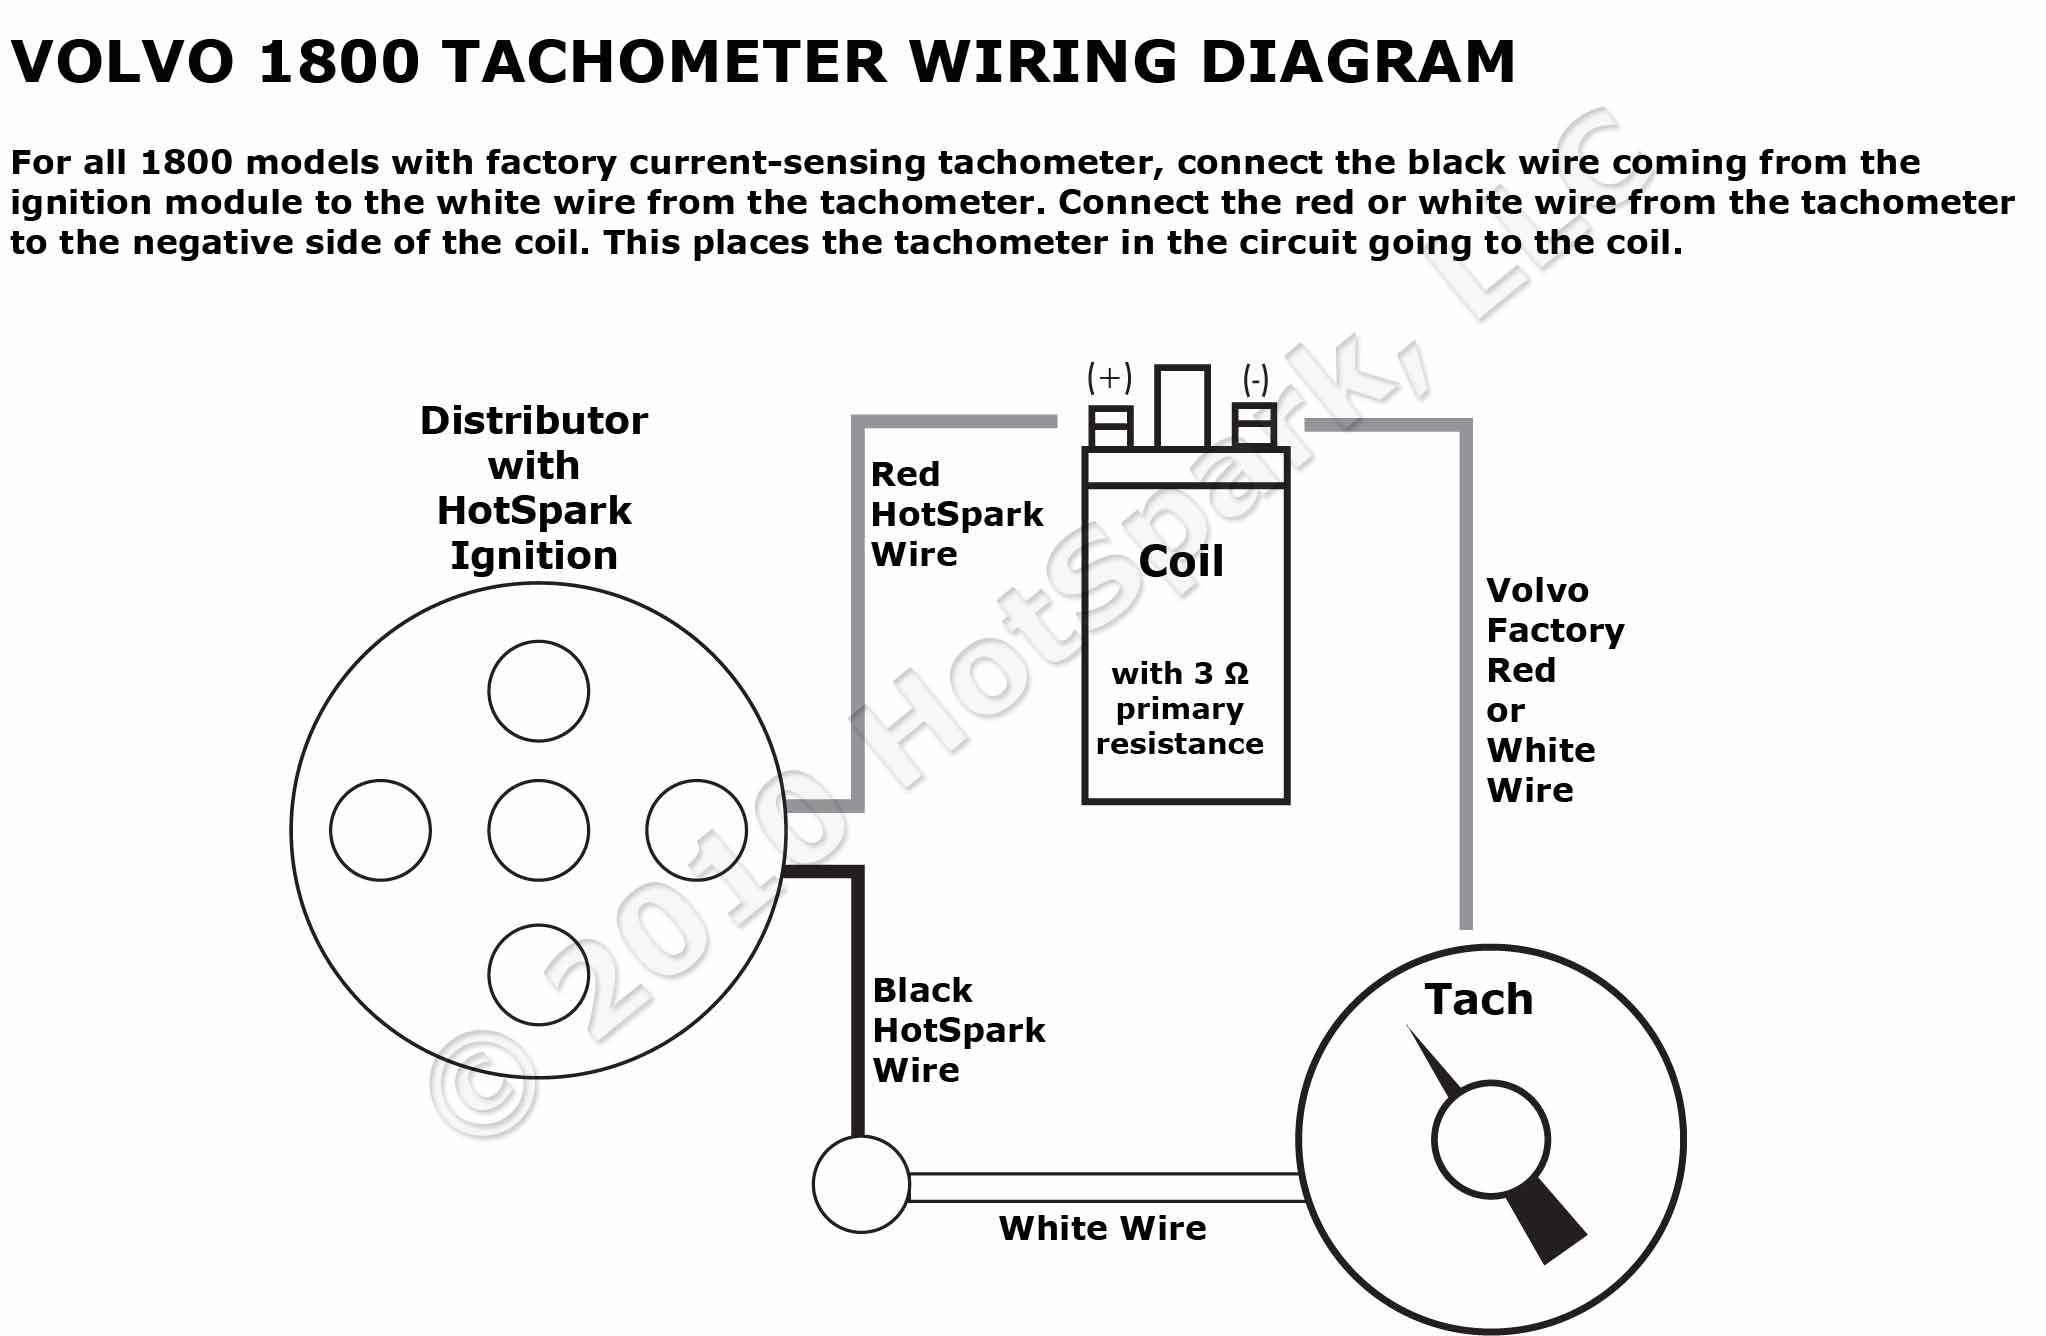 volvo 1800 tachometer wiring diagram with hotspark ignition rh hot spark com 1976 ford electronic ignition wiring diagram mopar electronic ignition wiring diagram